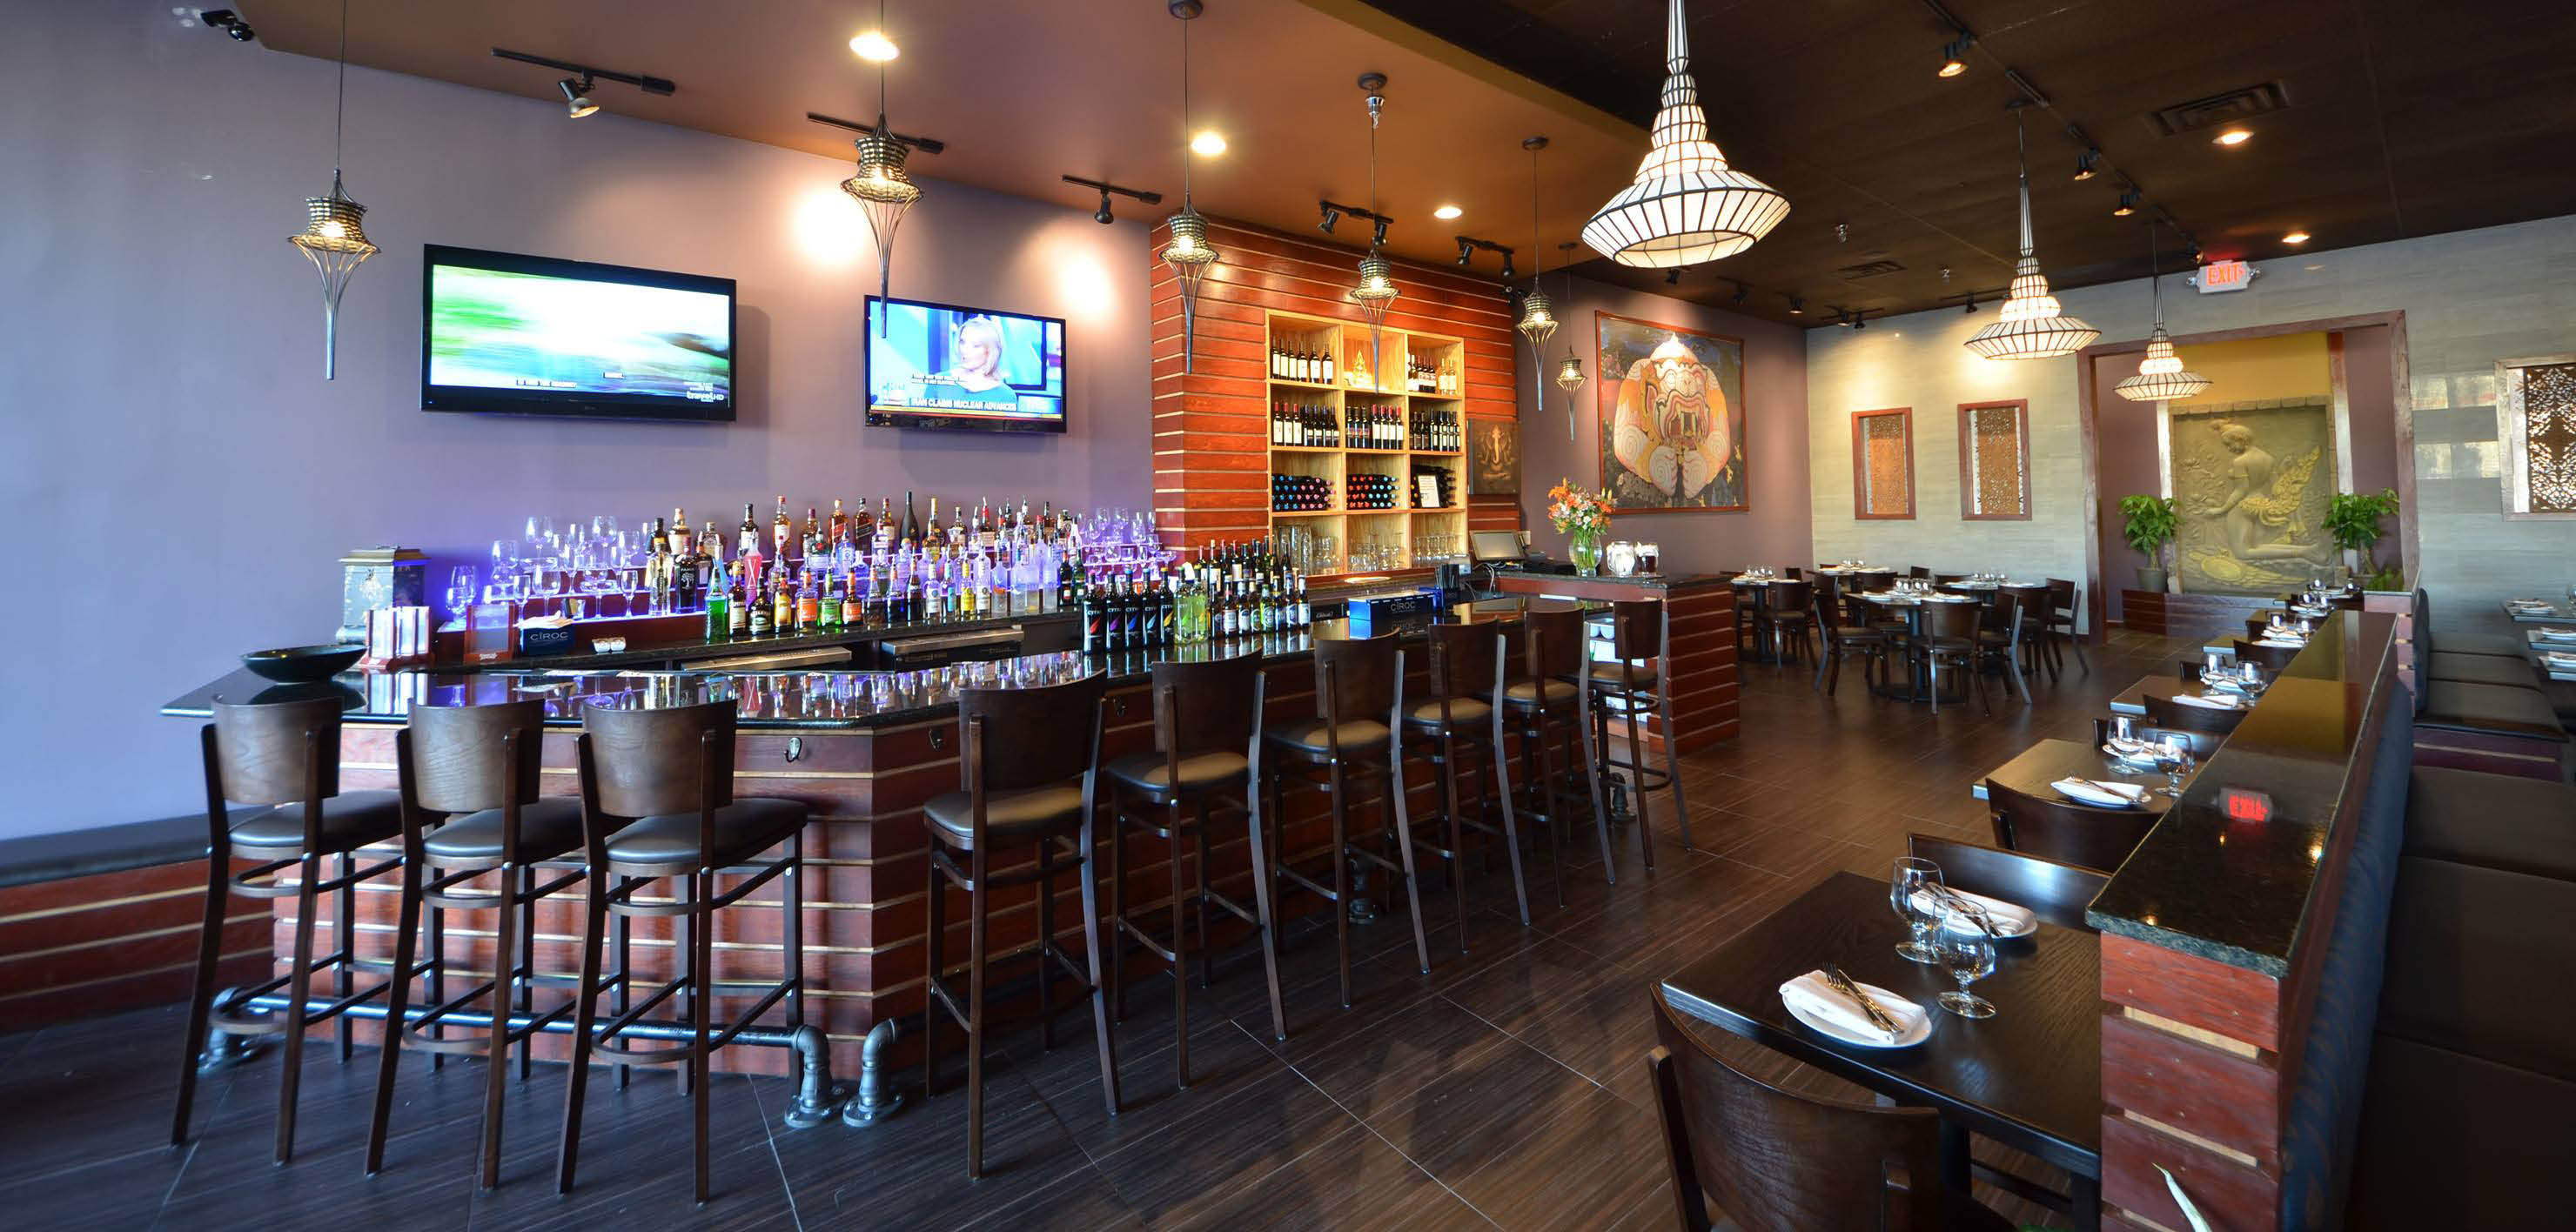 bar, happy hour, beer, wine, rice and spice thai cuisine located in alexandria, va